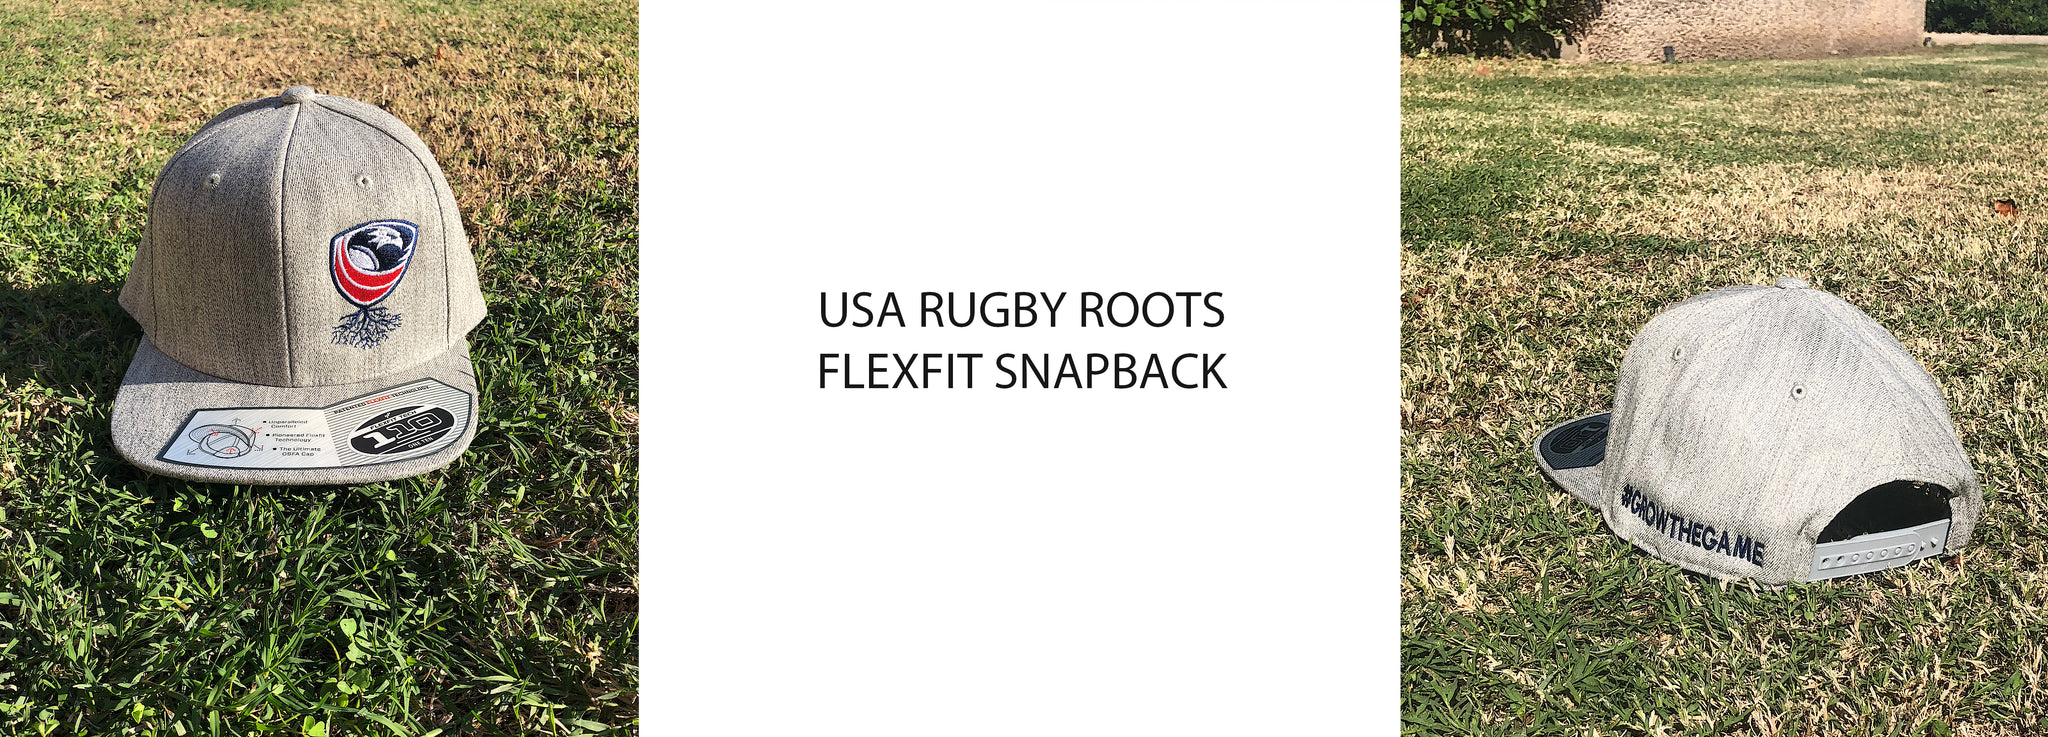 USA RUGBY ROOTS FLEXFIT SNAPBACK